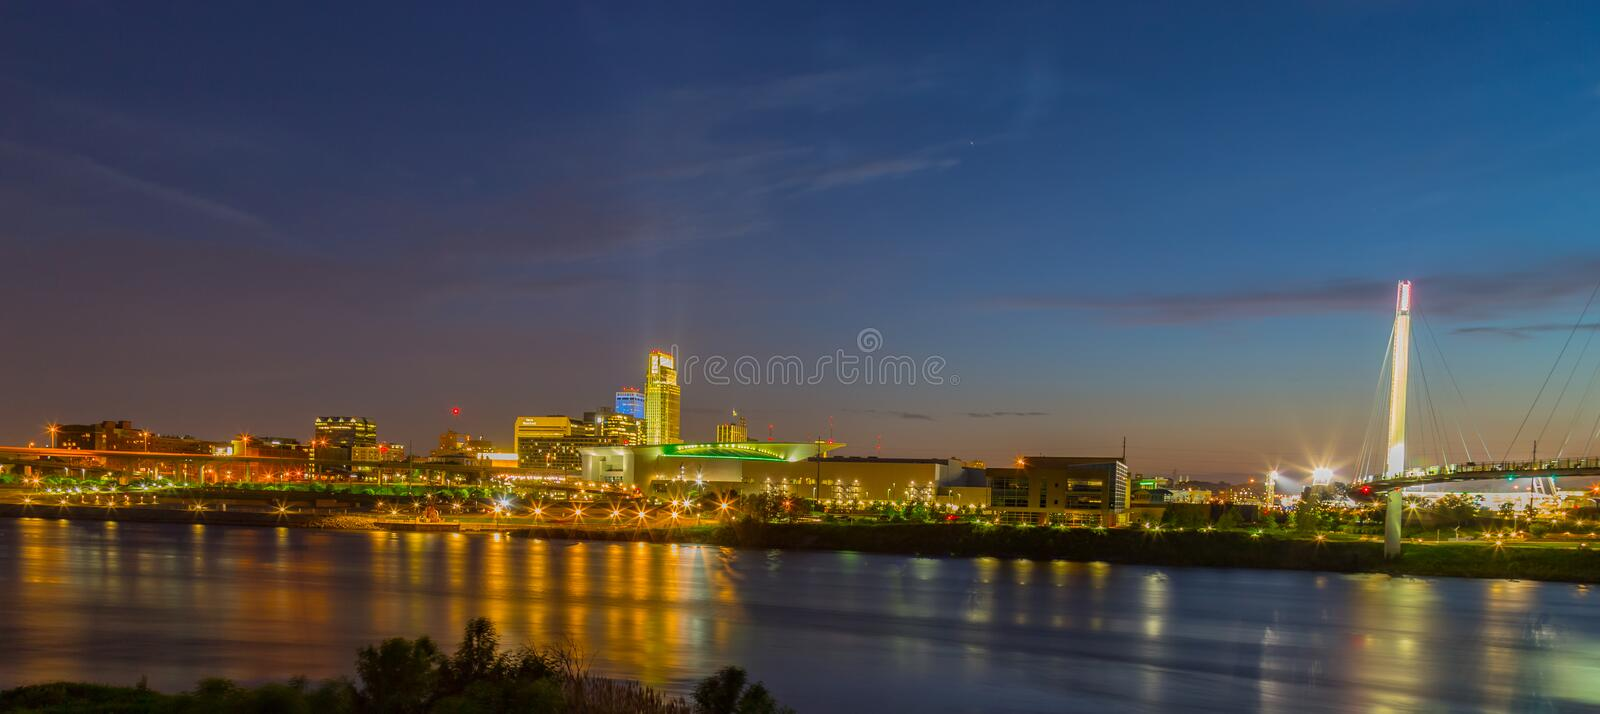 Night scene of Omaha waterfront with light reflections on the r Omaha Nebraska skyline with beautiful sky colors just after sunset stock images